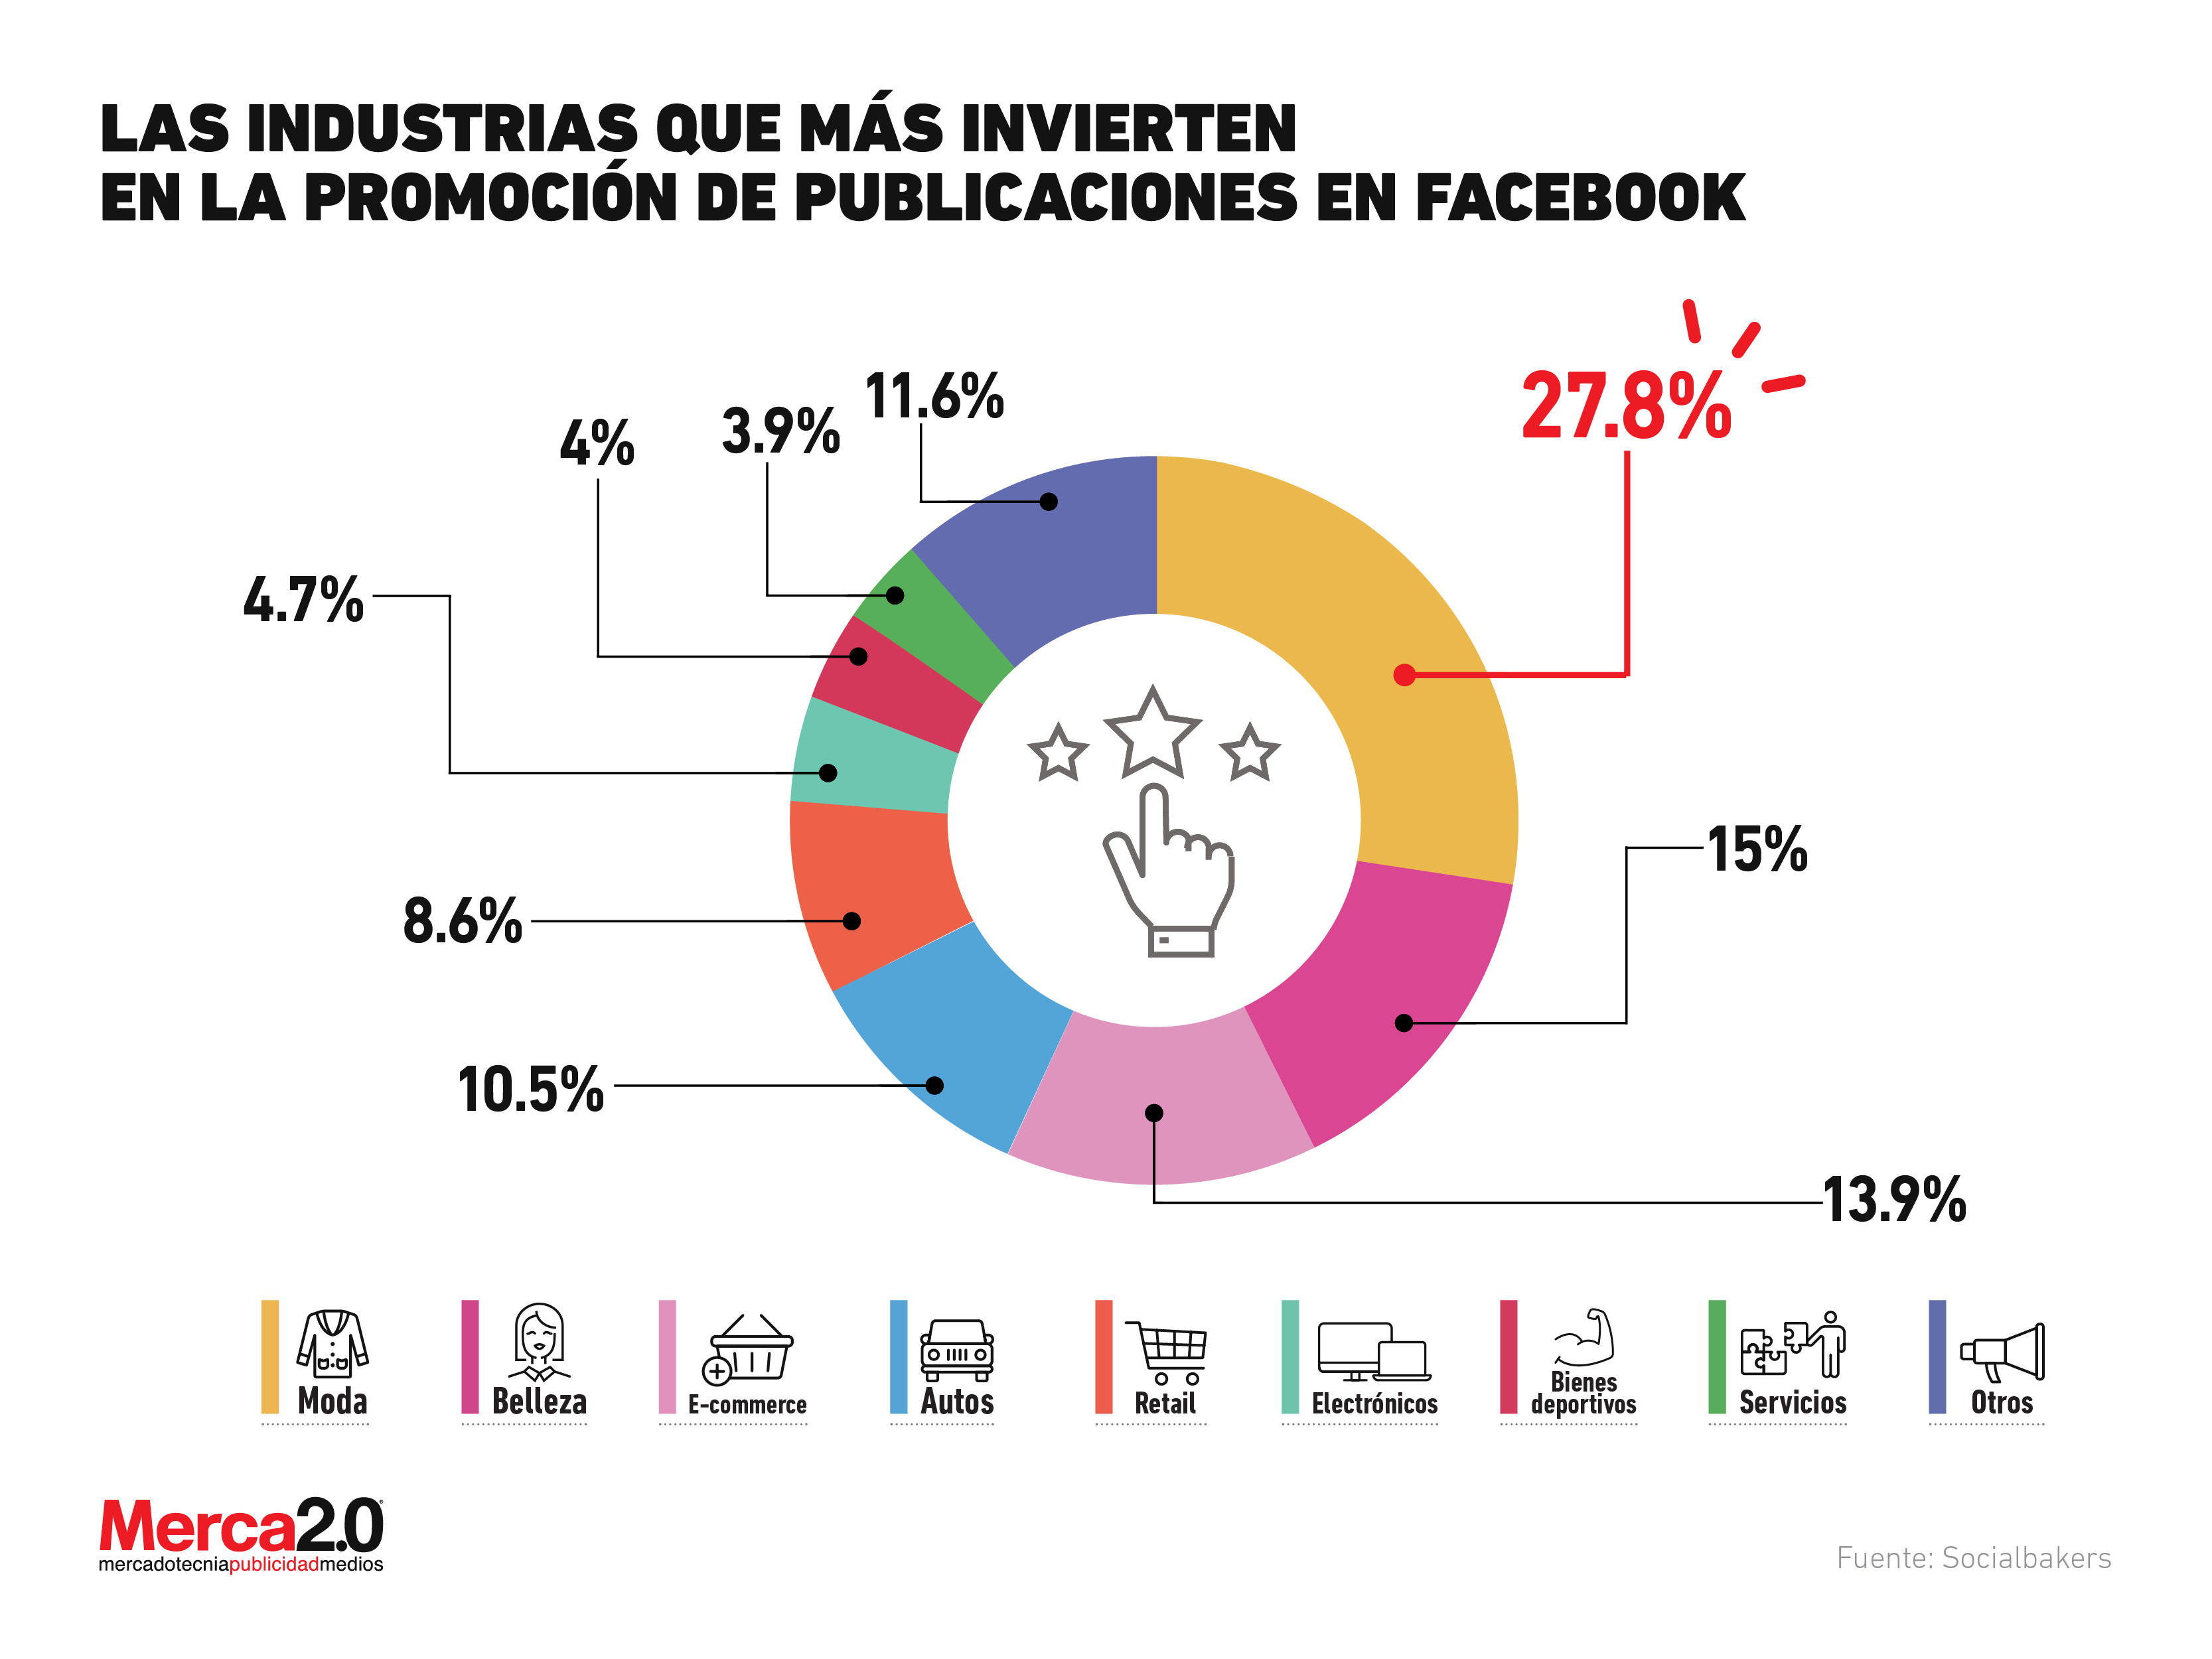 Which industries invest more in advertising within Facebook?